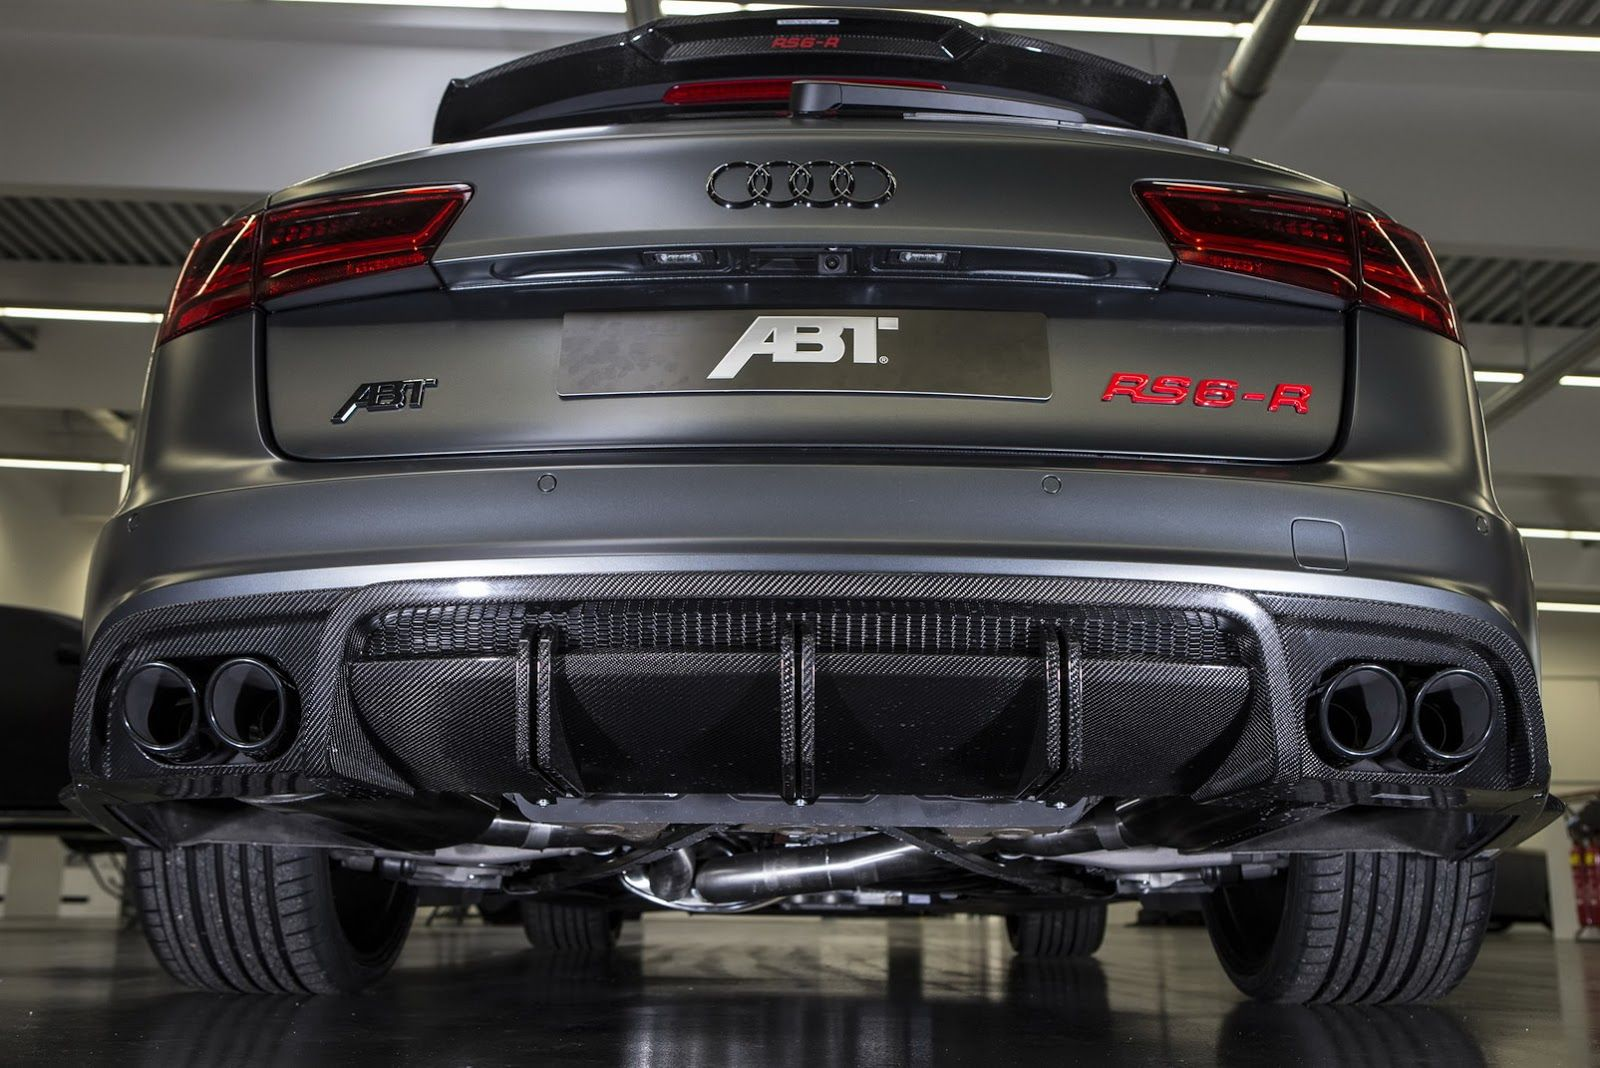 Do you prefer a wider track audi rs6 priordesign wide body kit with vossen wheels oooo audidriven what else pic _theautoart